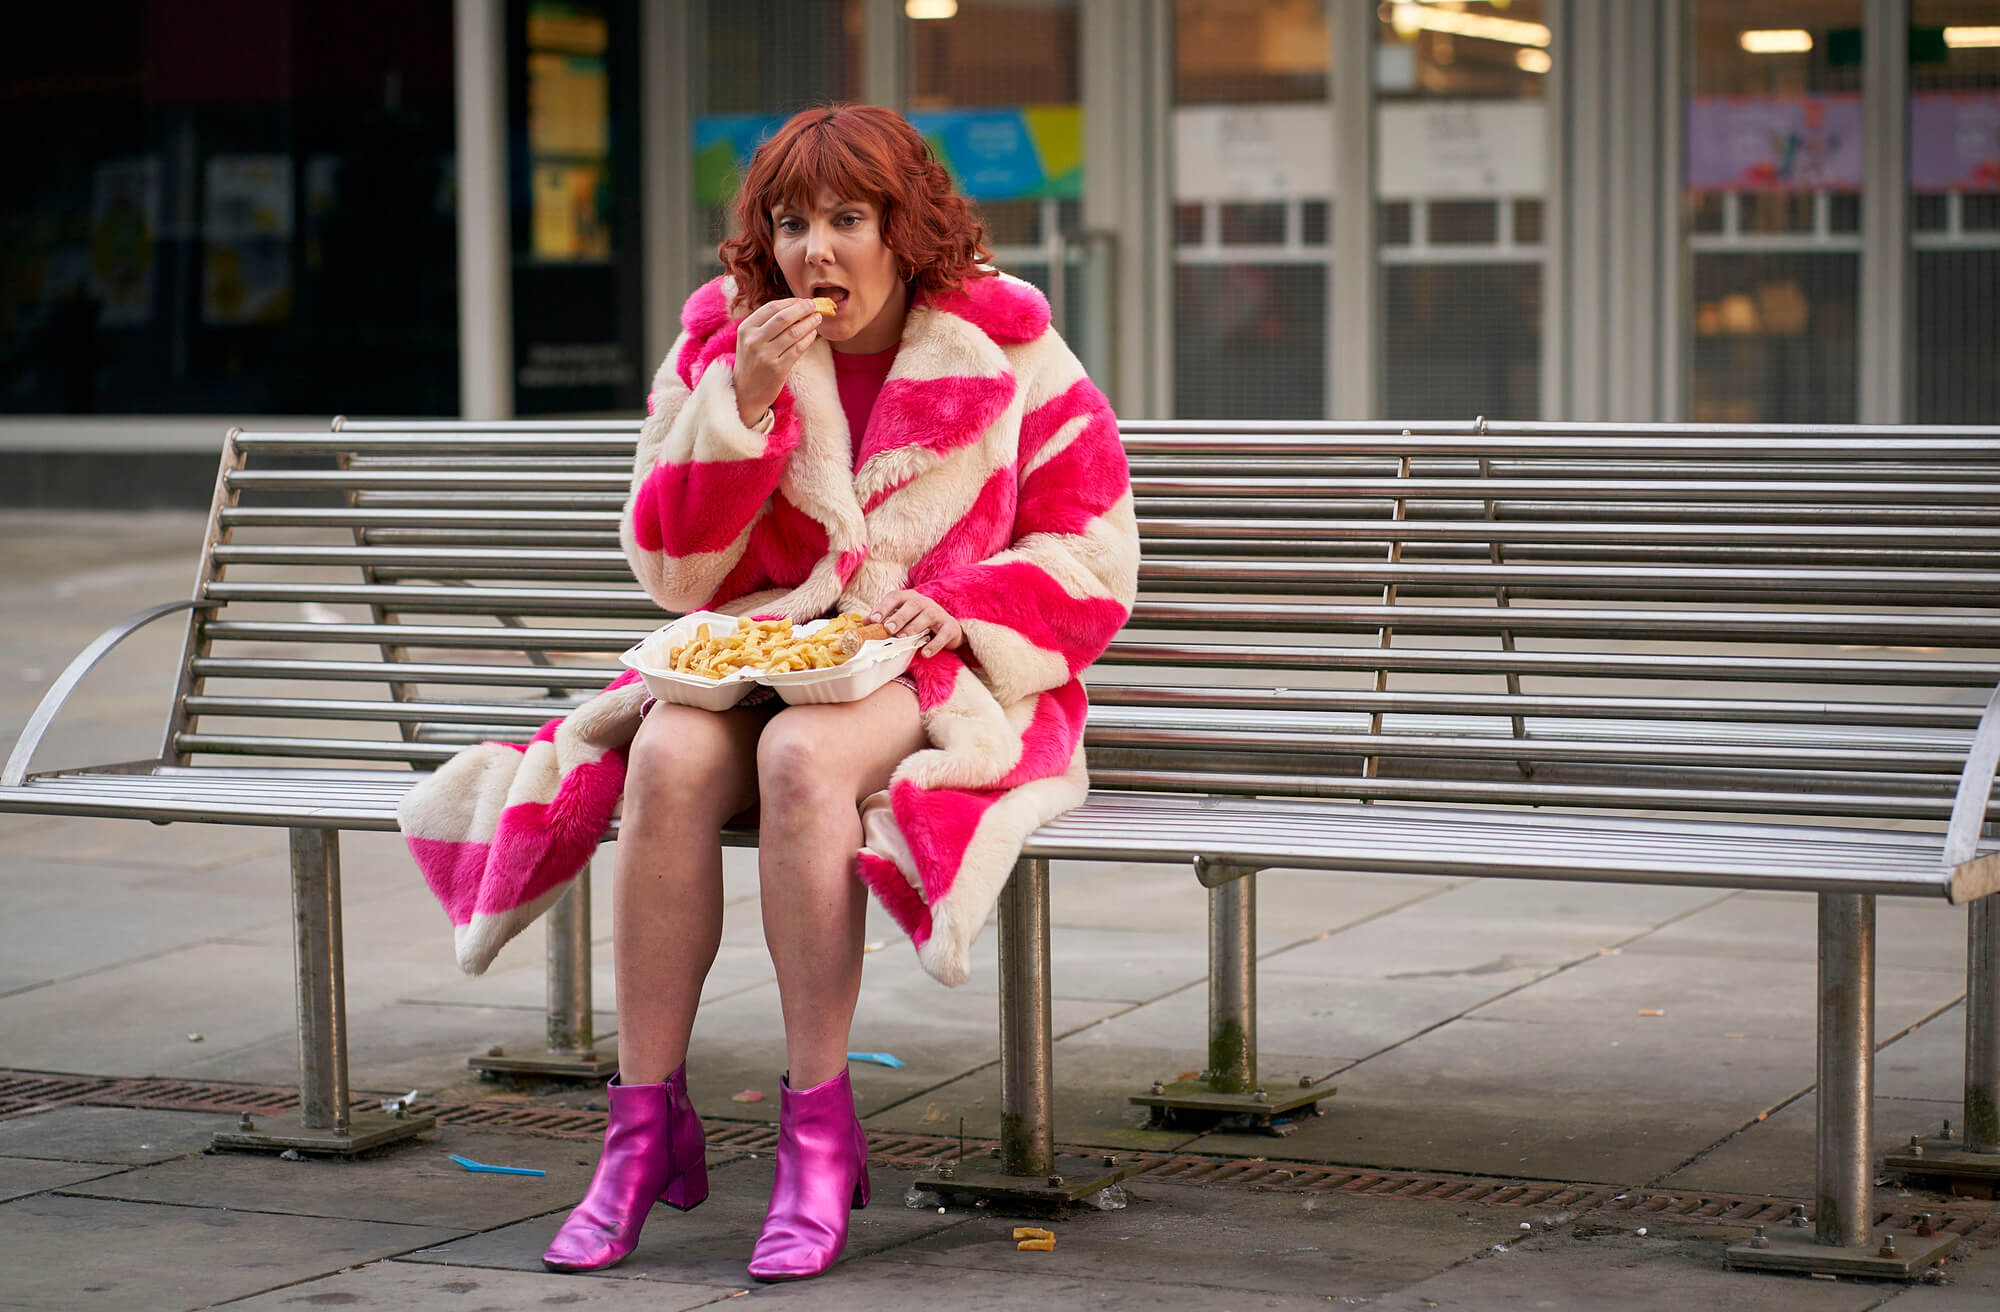 woman in pink eating on a bench